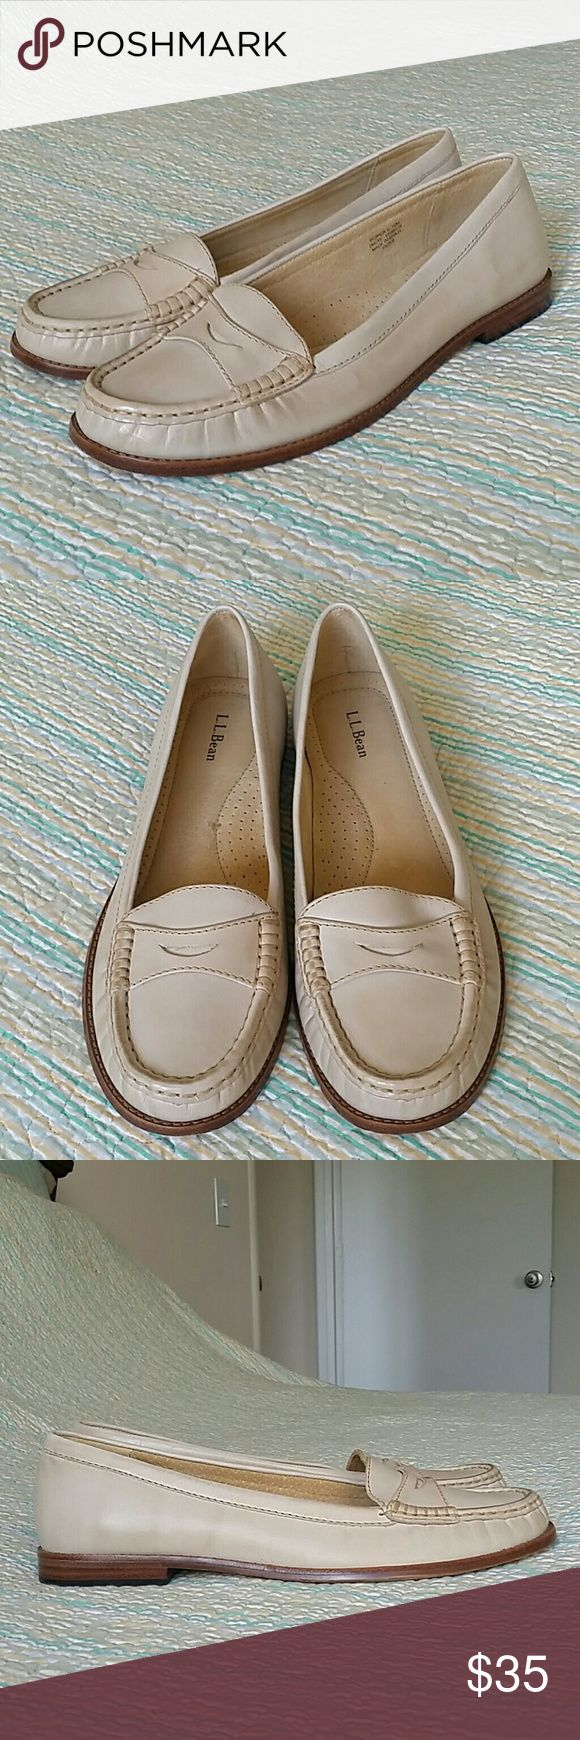 LL Bean Ivory Off White Cream Leather Loafer Sz 10 LL Bean Ivory Off White Cream Leather Penny Loafers Slip On Flats Wms Sz 10 M L.L. Bean Shoes Flats & Loafers